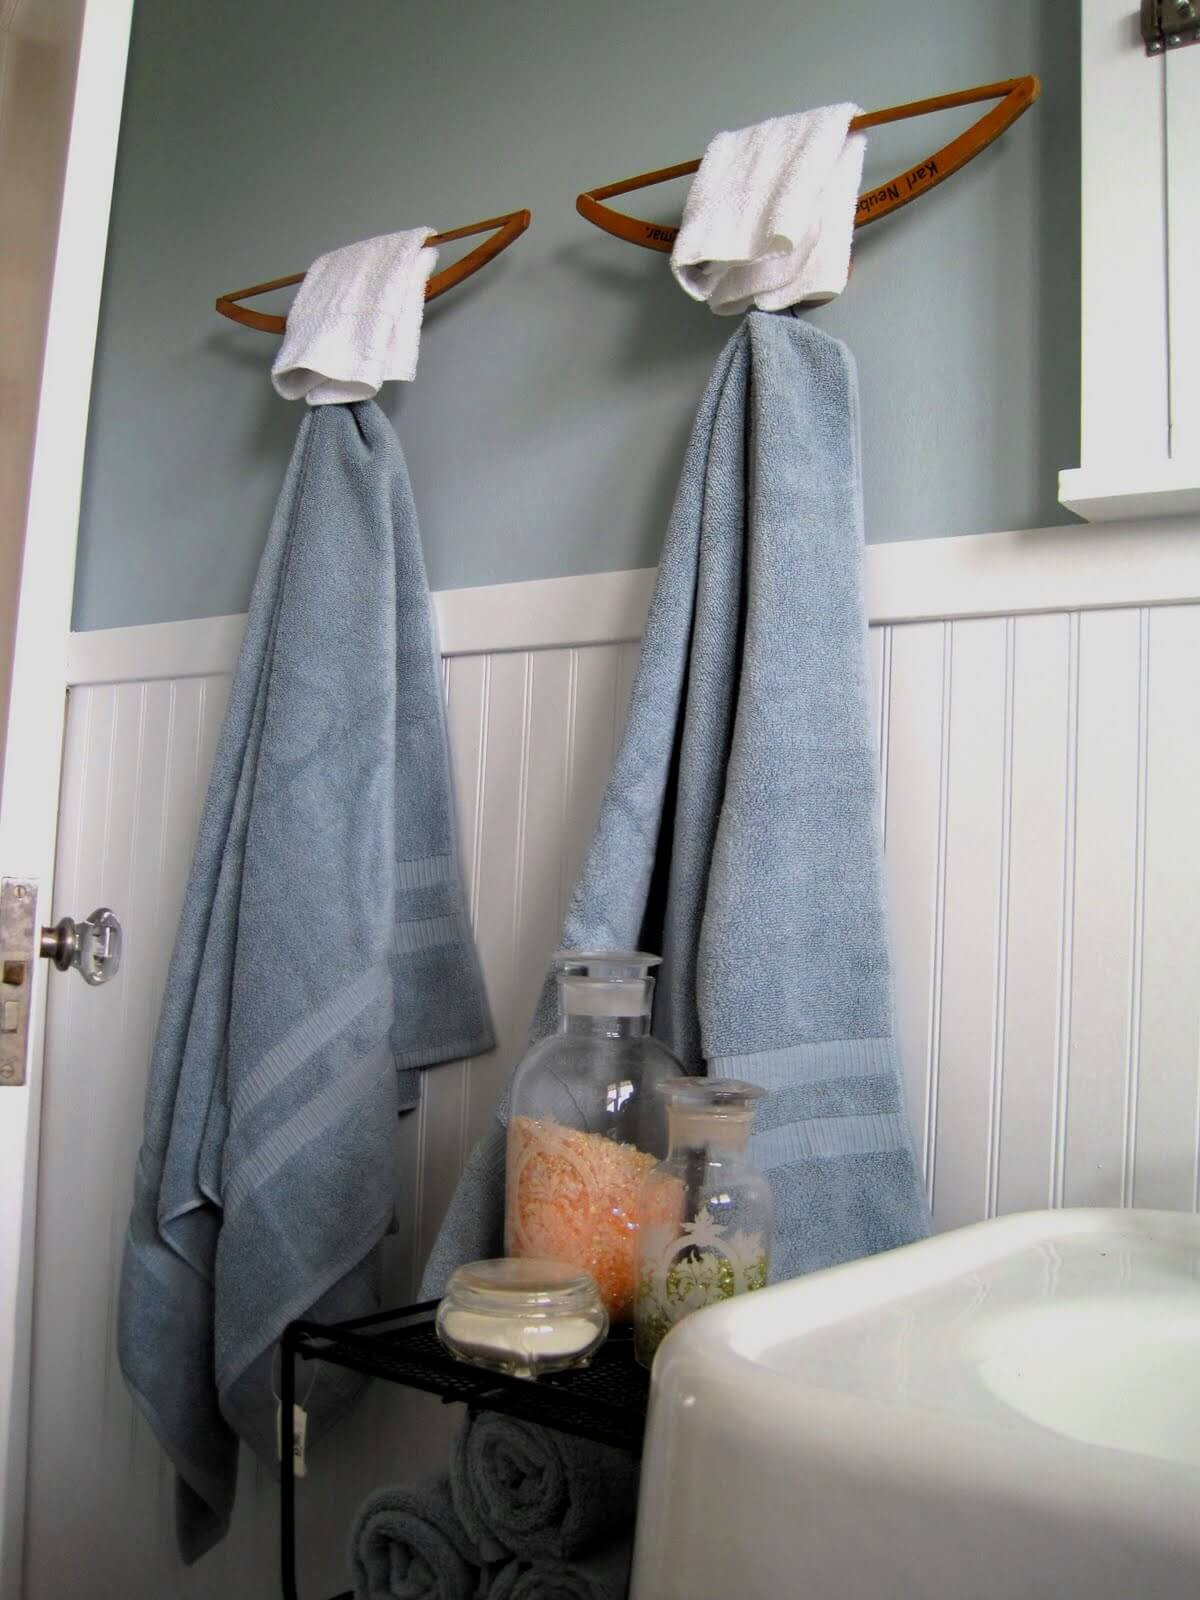 fantastic ideas for bathroom towel rack ideas design decorations with bathroom towel racks design bathroom towel racks designs